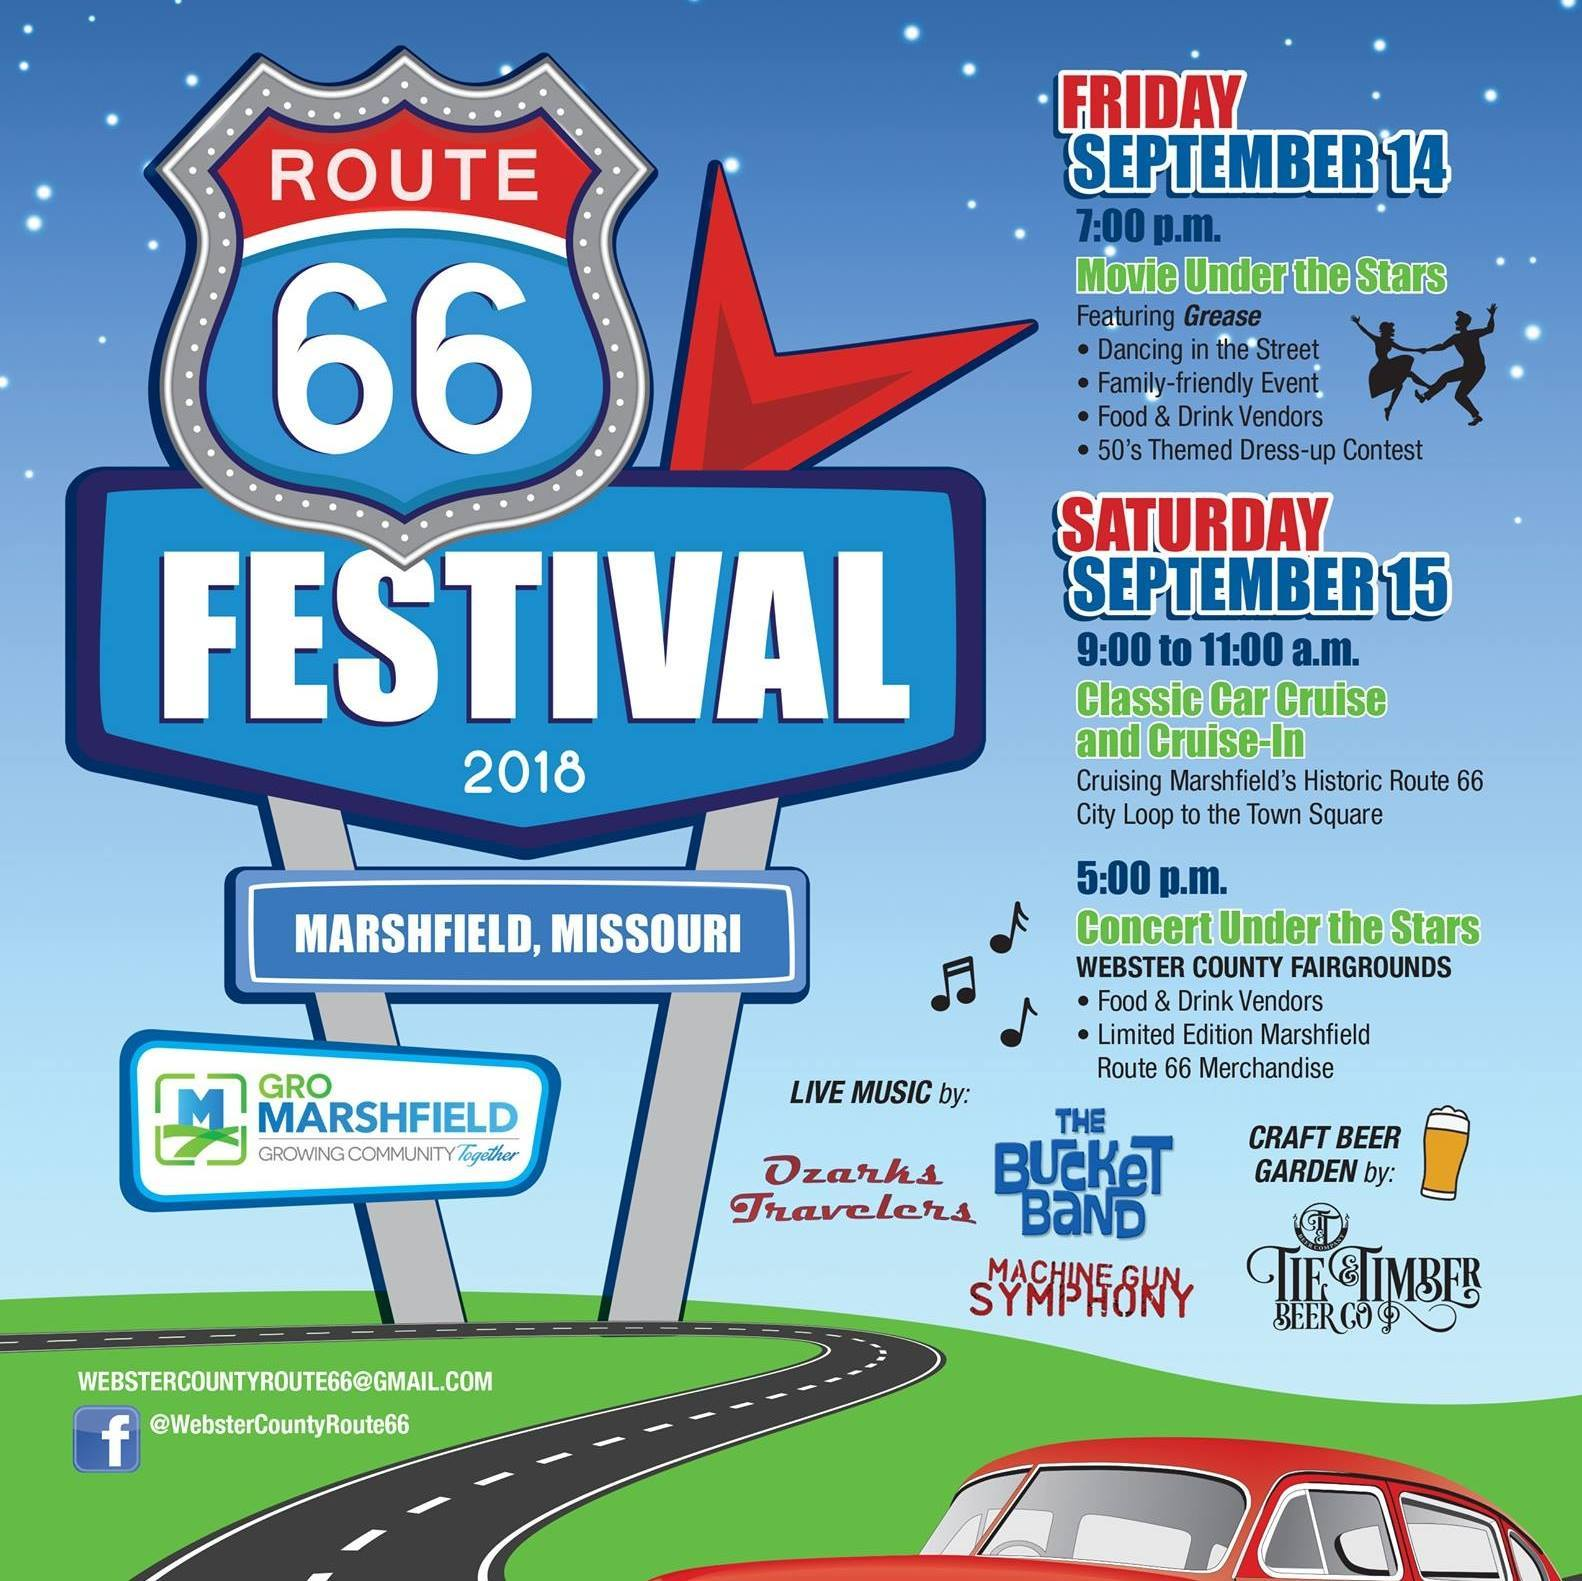 Route 66 Festival in Marshfield